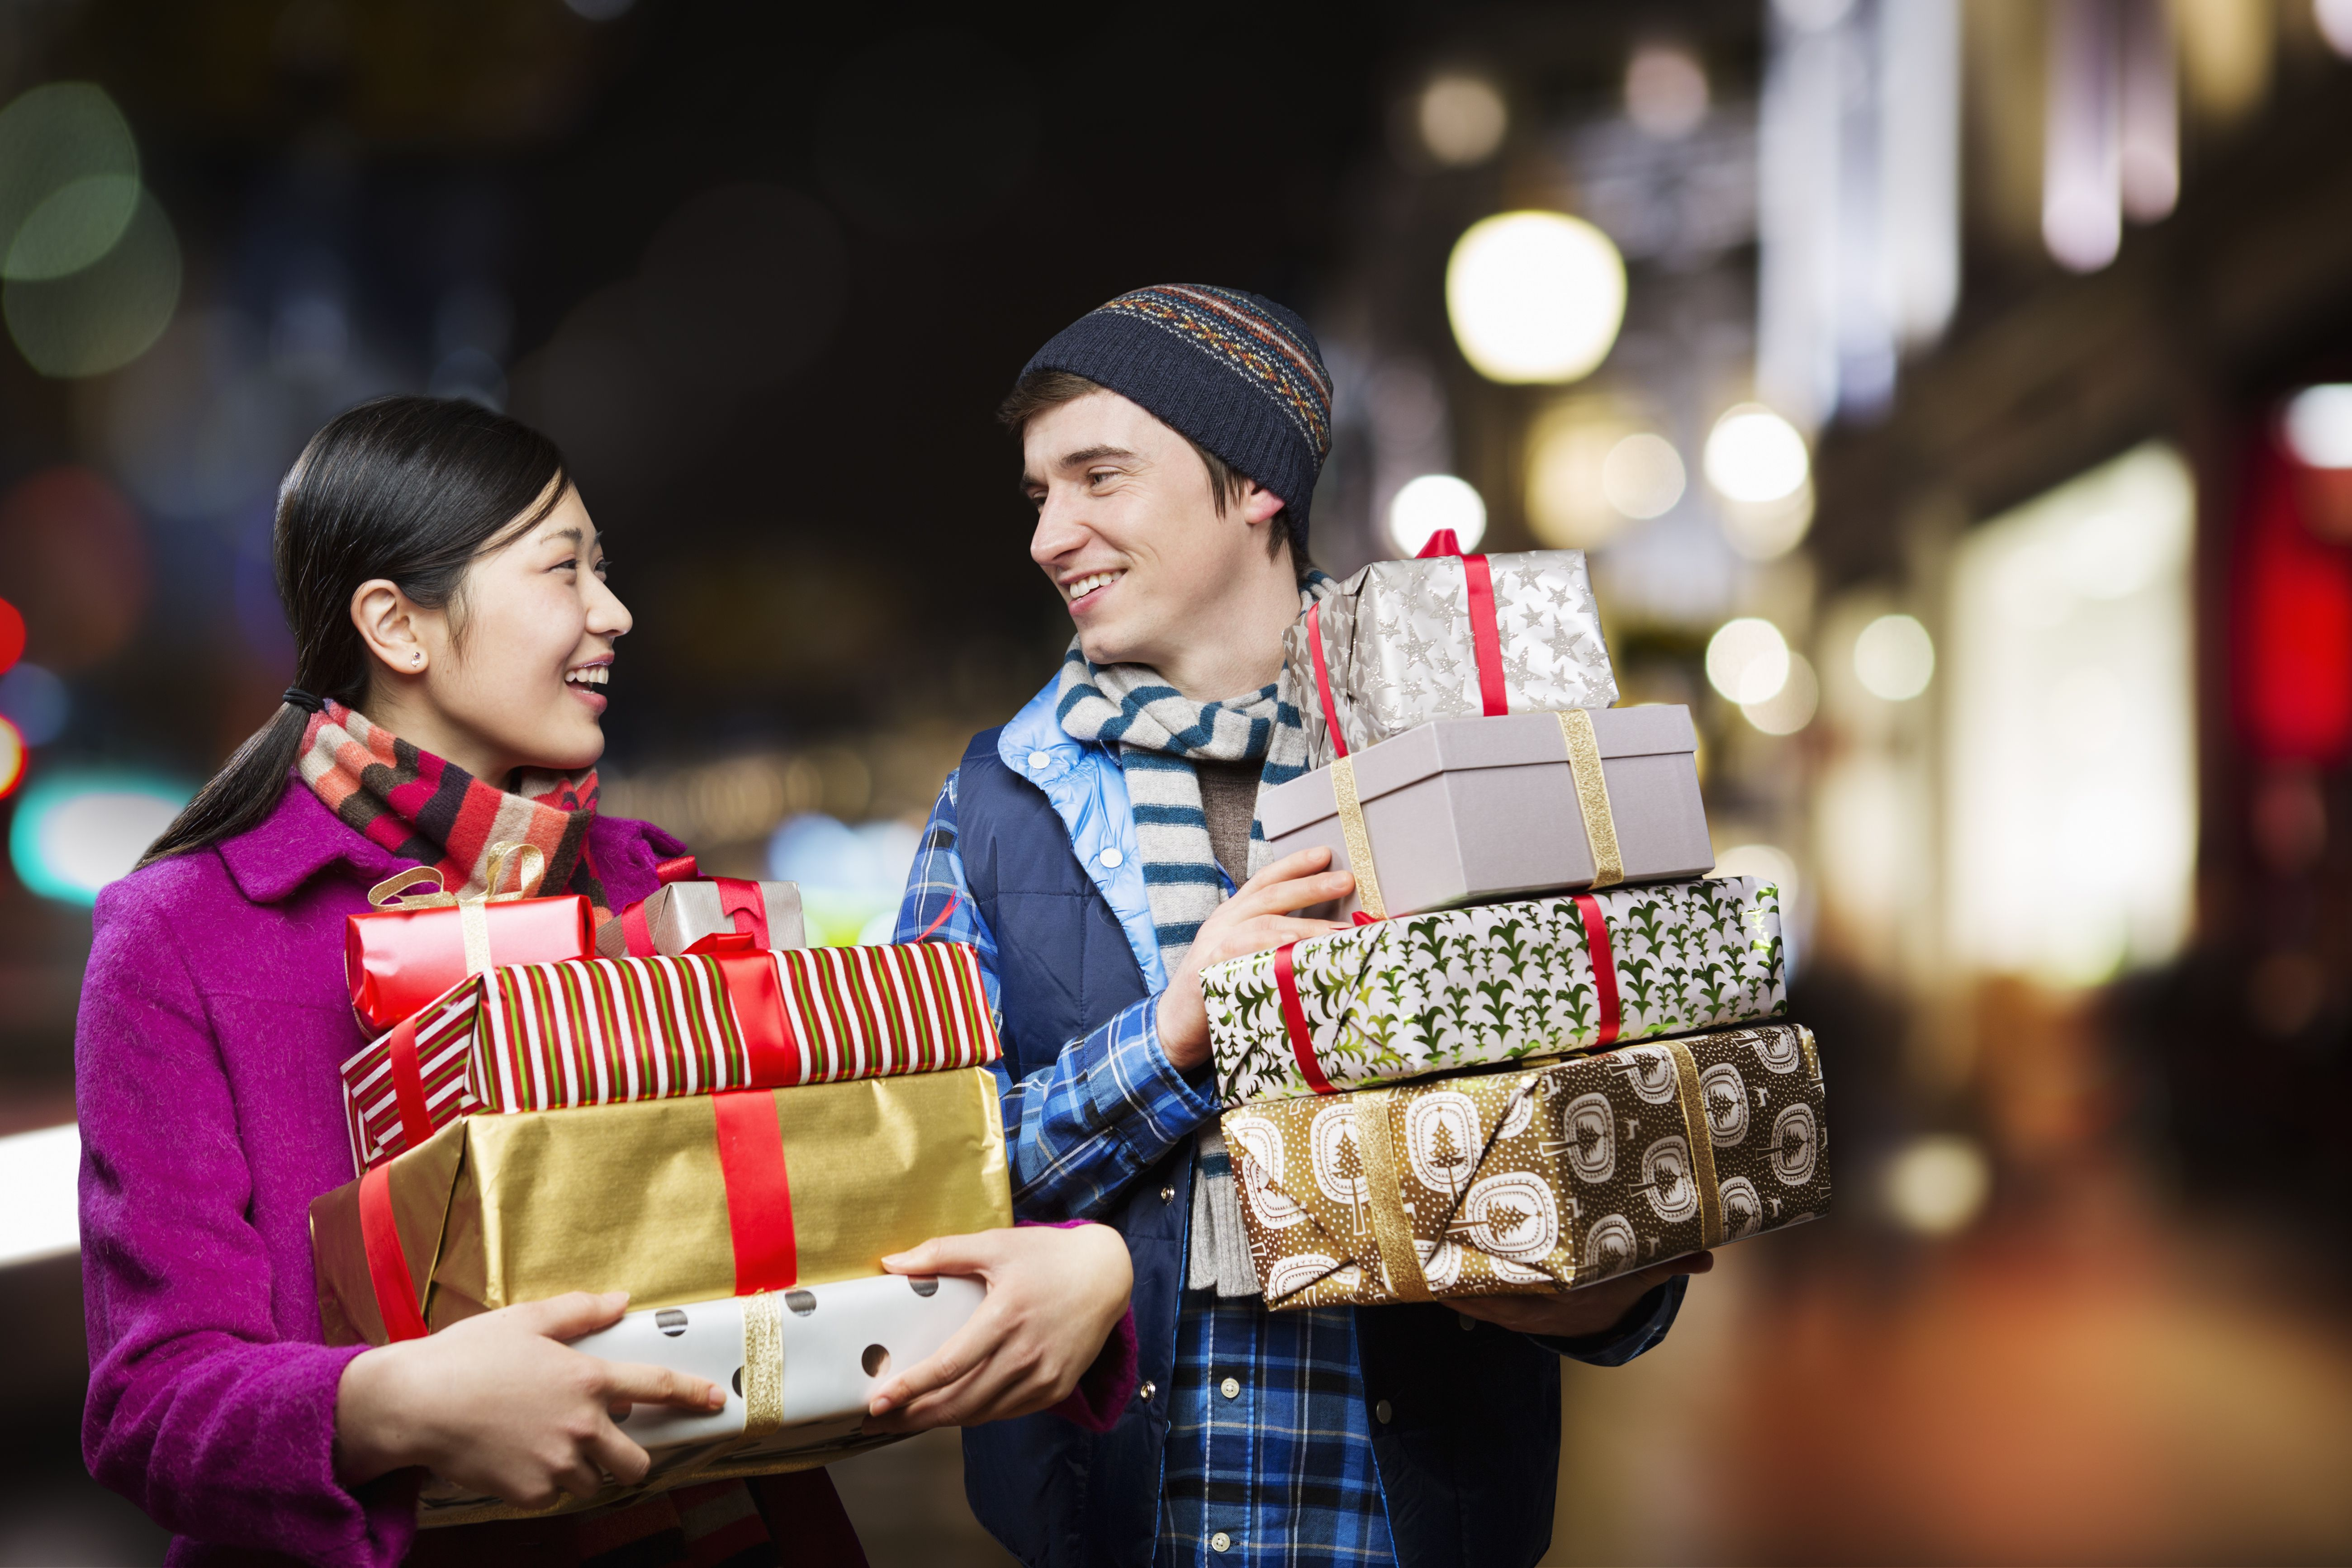 Official Start of the Christmas Holiday Sales Season